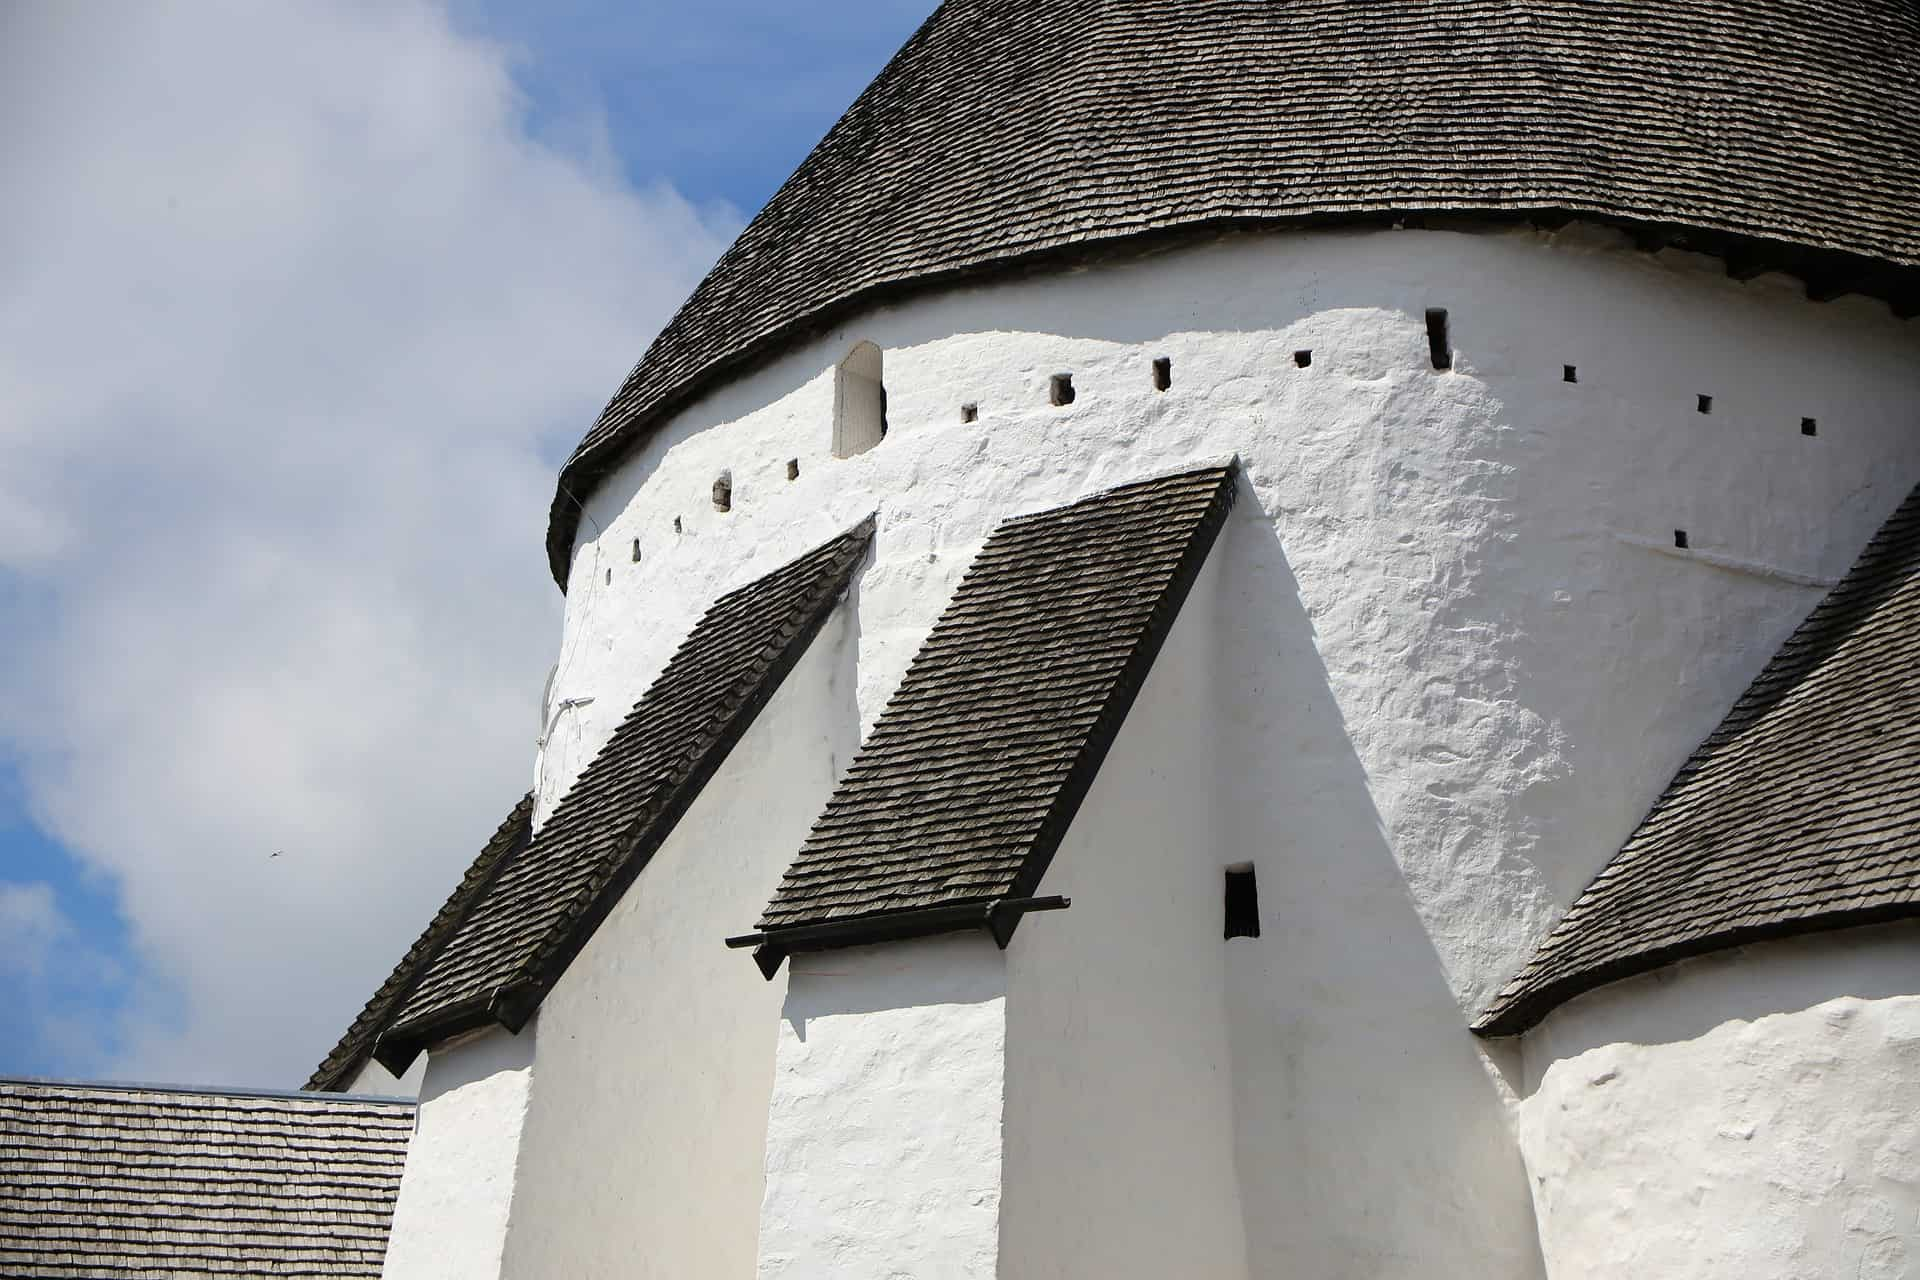 The Danish island of Bornholm is known for the unique centuries old white windmills and churches.